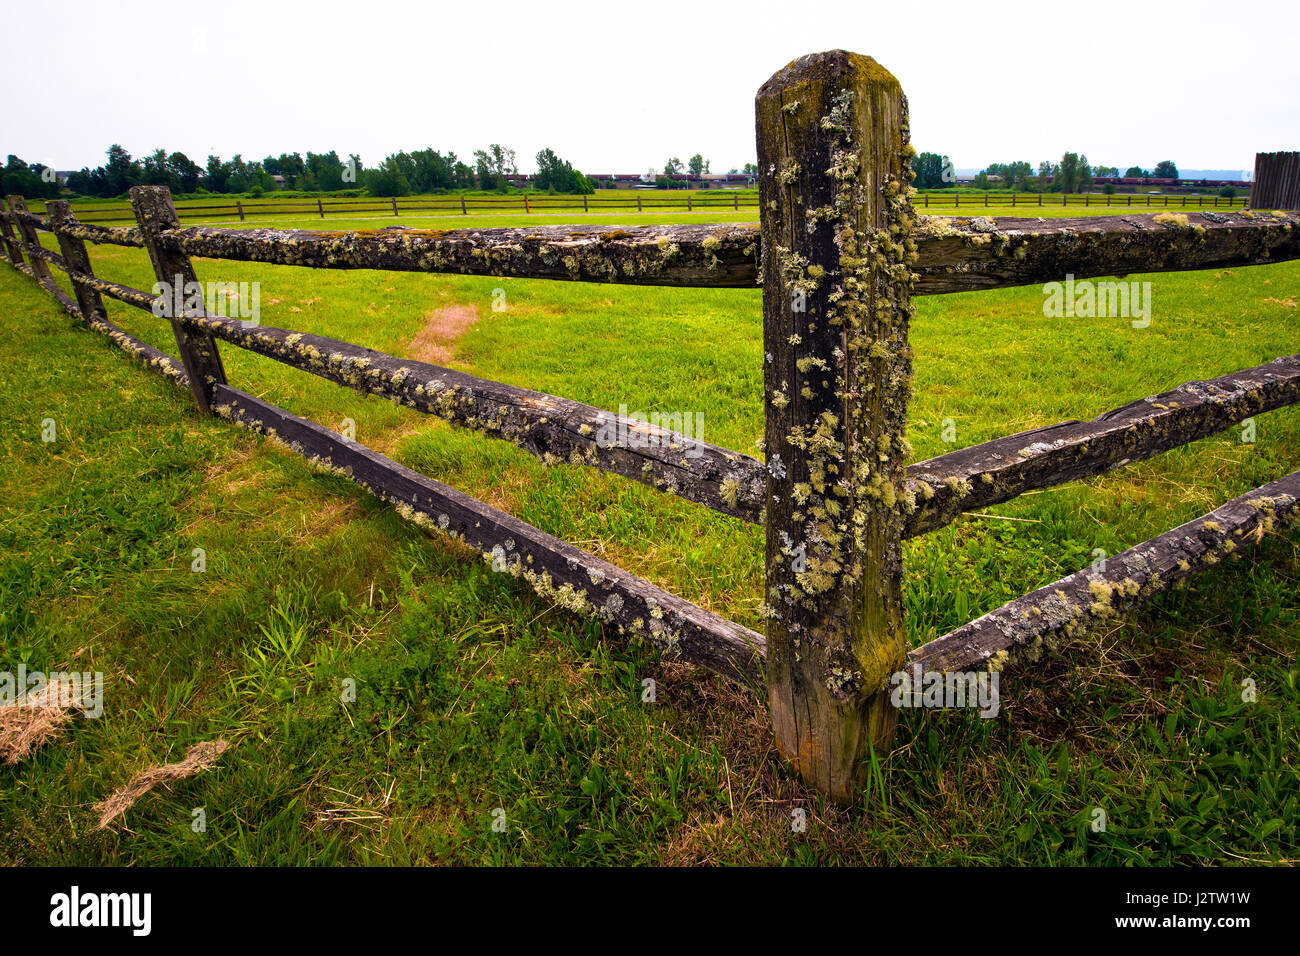 Corner of the old wooden fence of mossy pillars and cross bars mounted on a green meadow, grassy - Stock Image